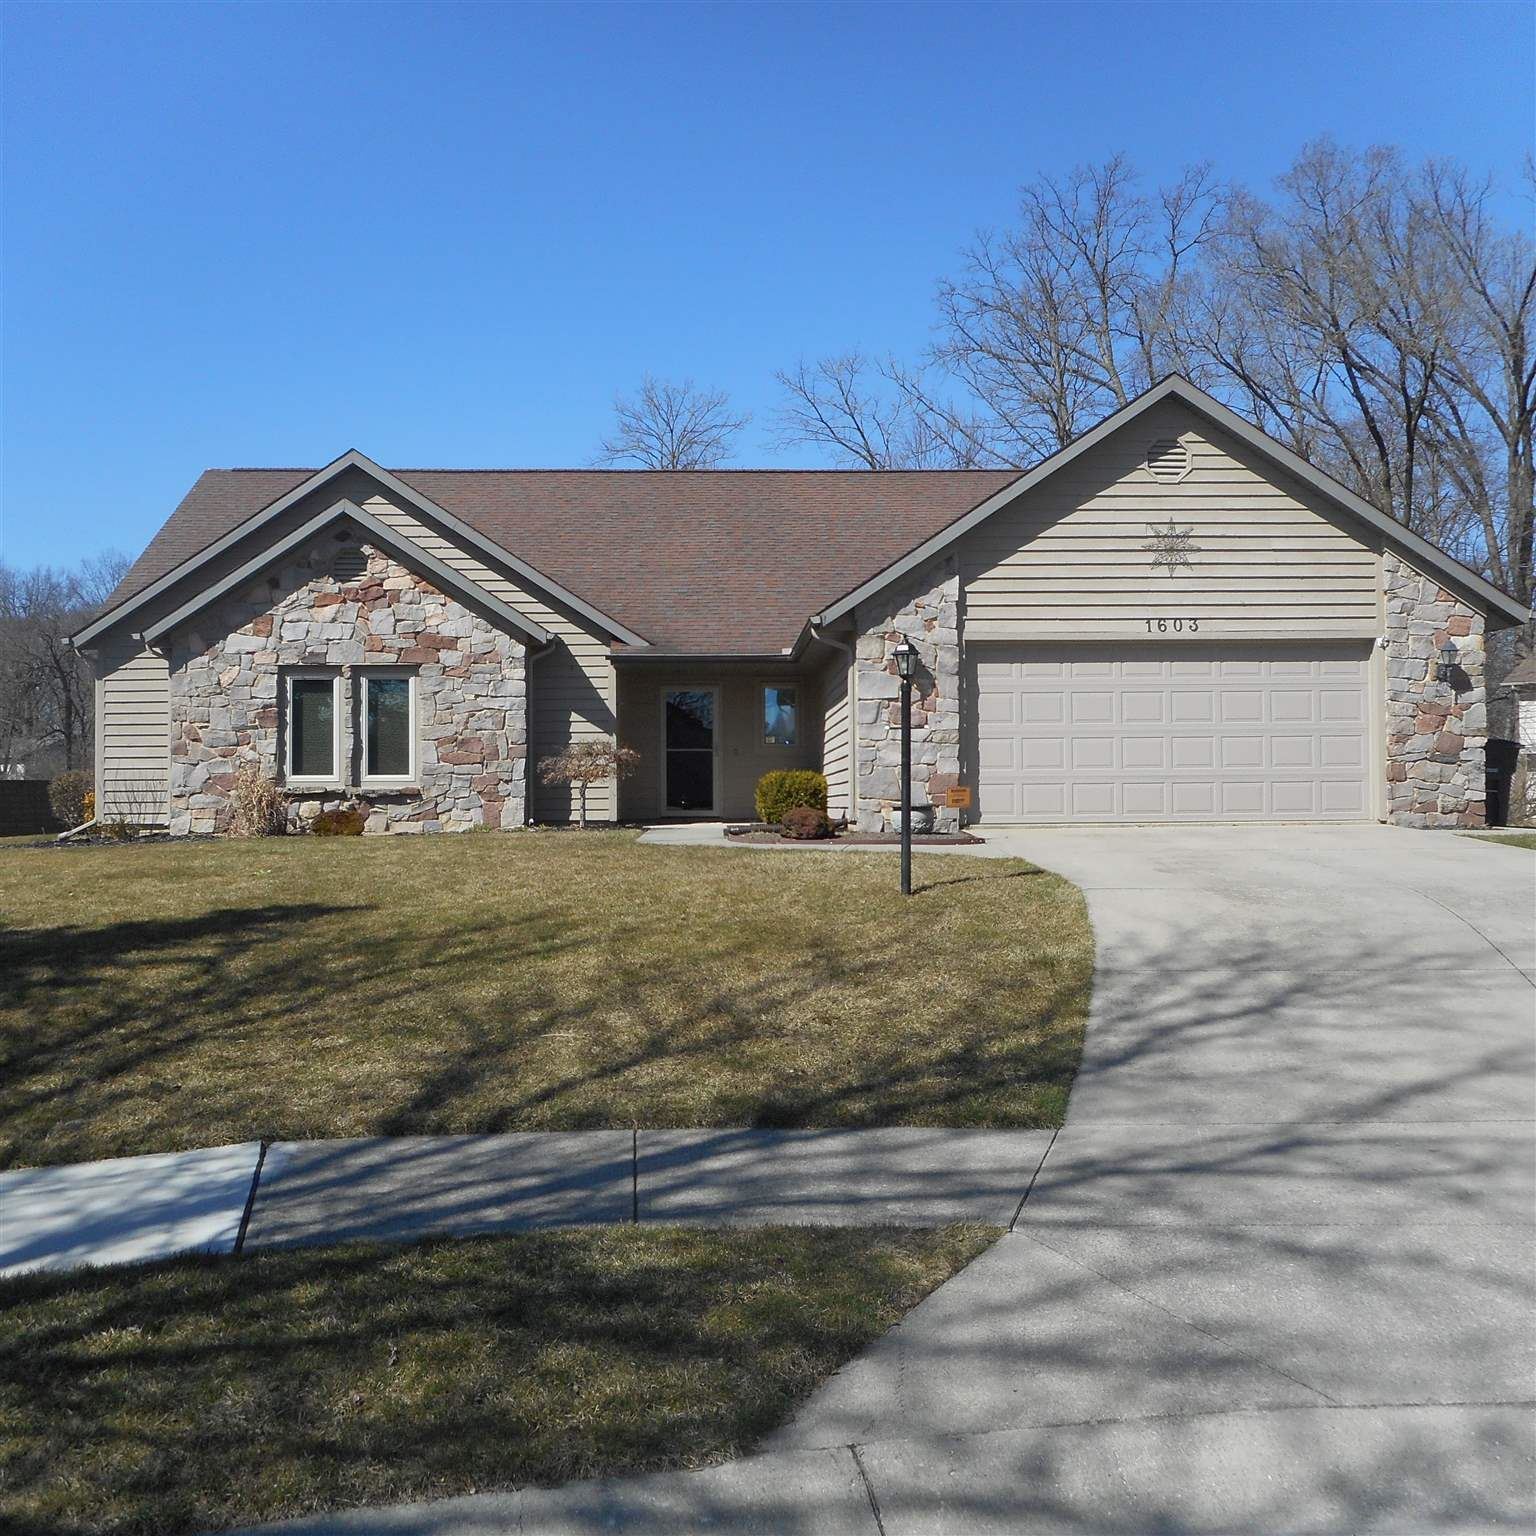 1603 Faulkner Court, Fort Wayne, IN 46815 - #: 202009556